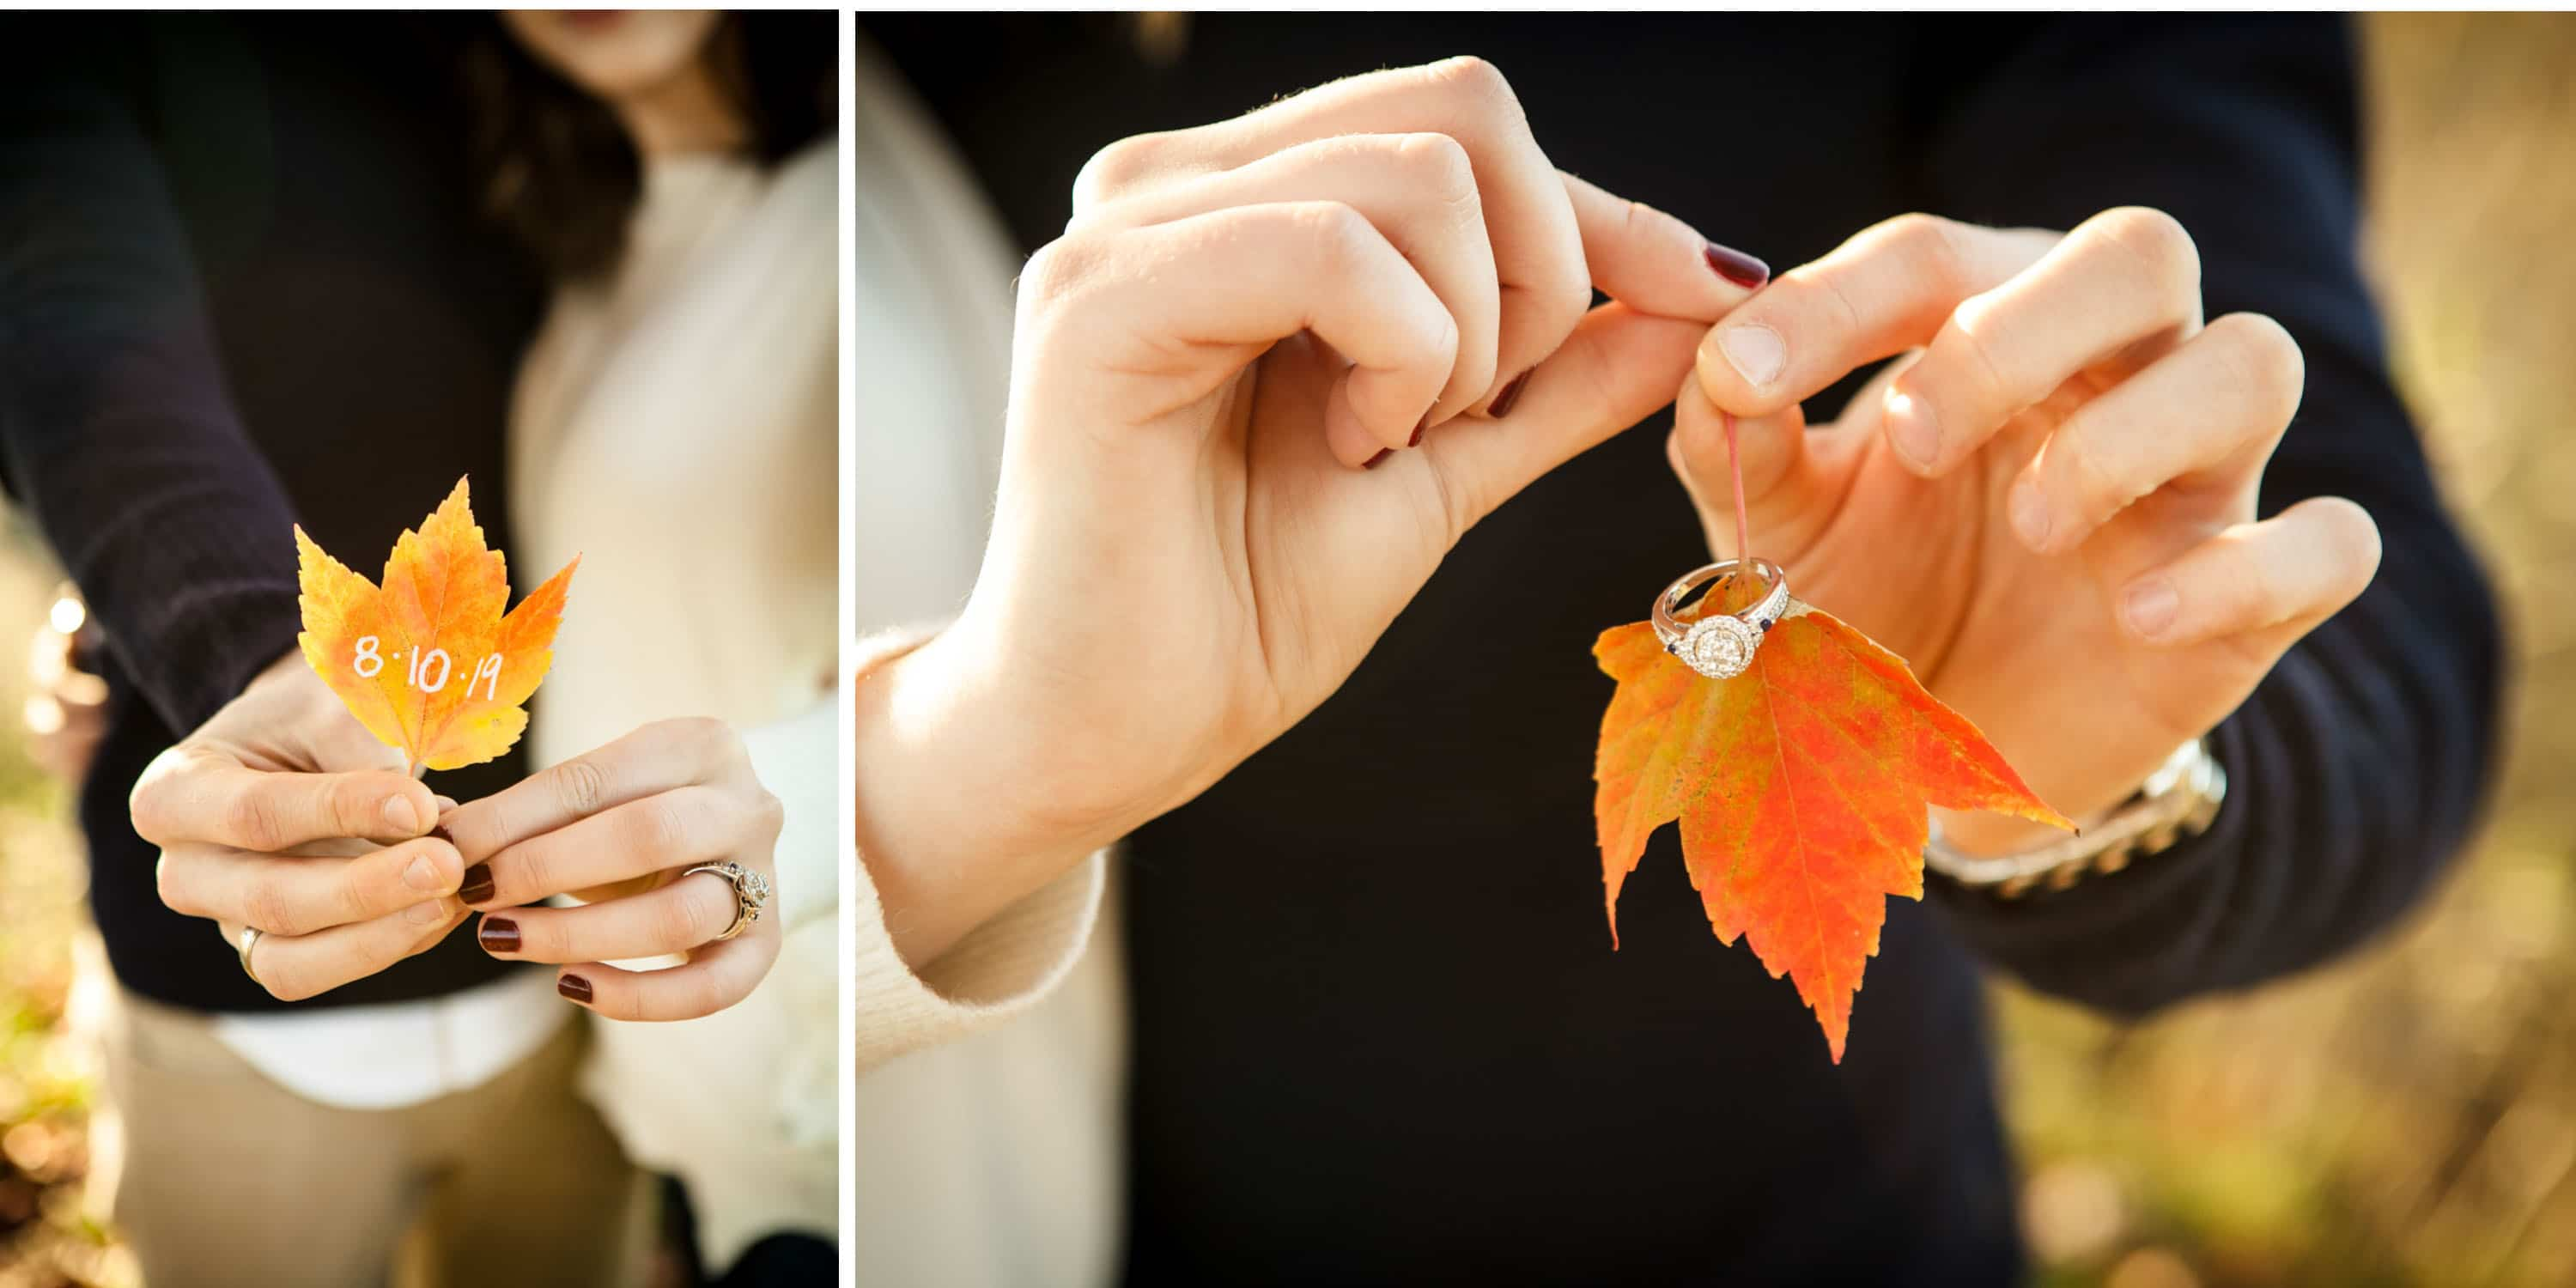 pnw adventure engagement session in bellingham wa fall photo inspiration Hovander